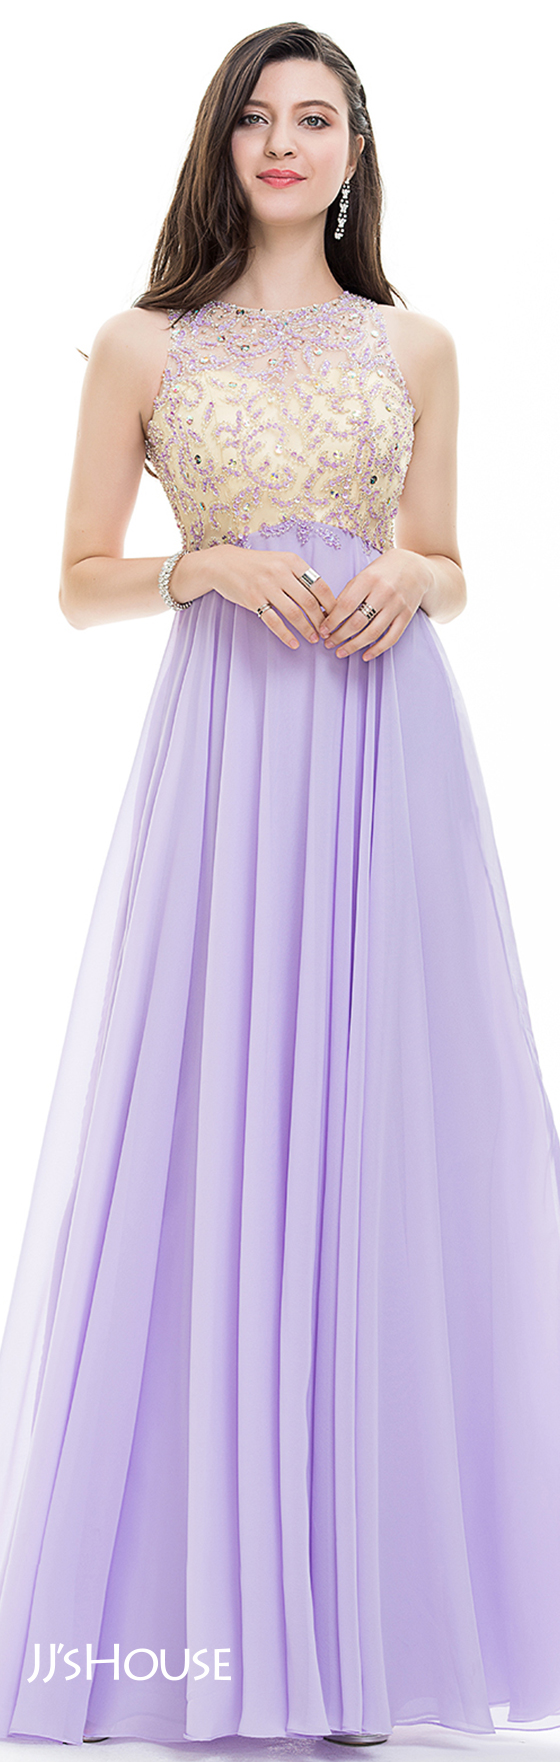 Jjshouse prom saru pinterest prom scoop neck and gowns